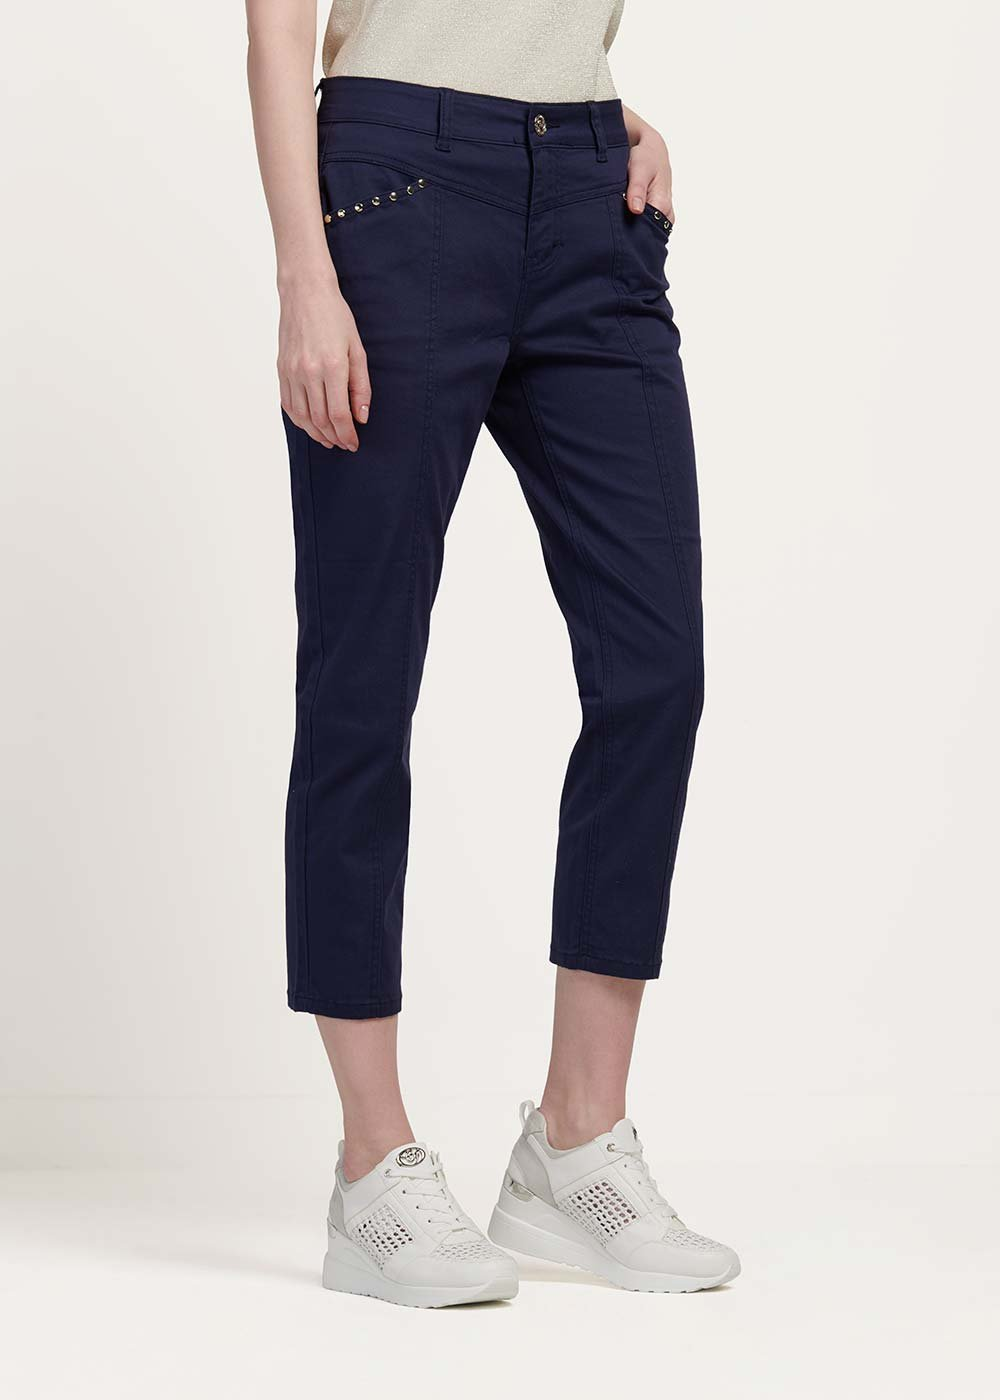 Palide capri pants with studs detail - Medium Blue - Woman